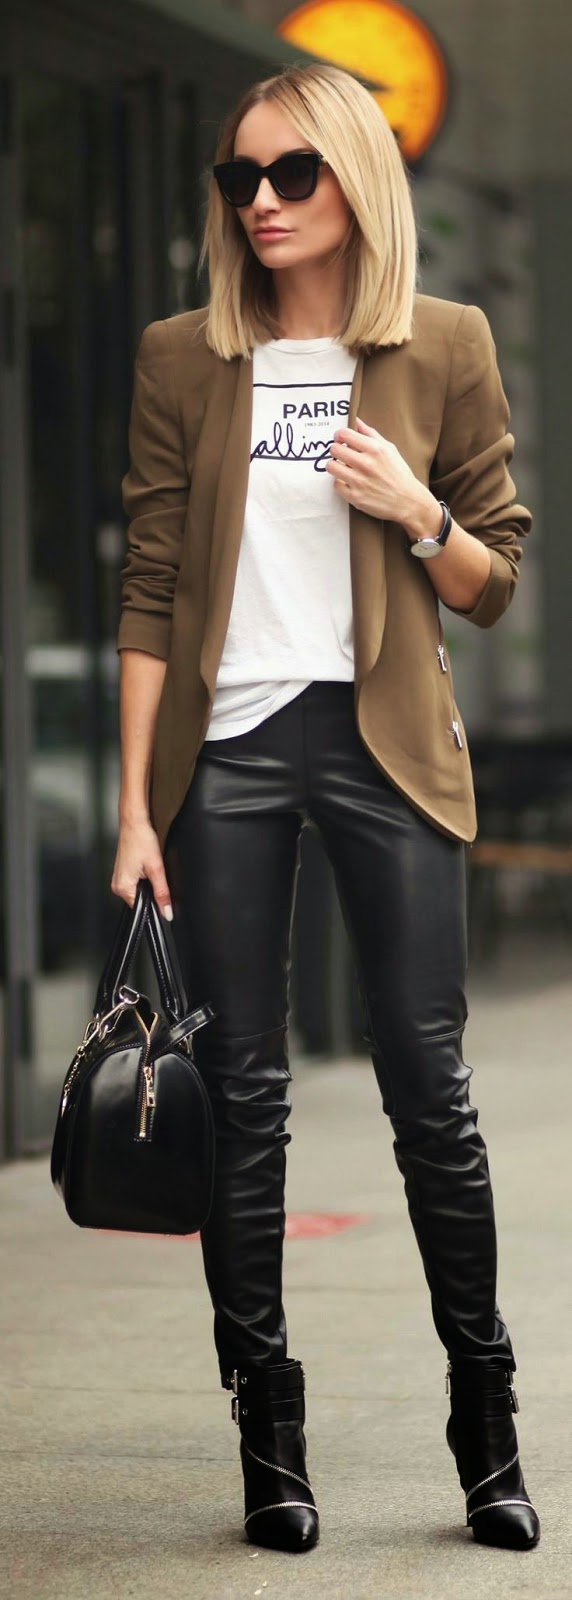 The-best-of-street-fashion-outfits-2015